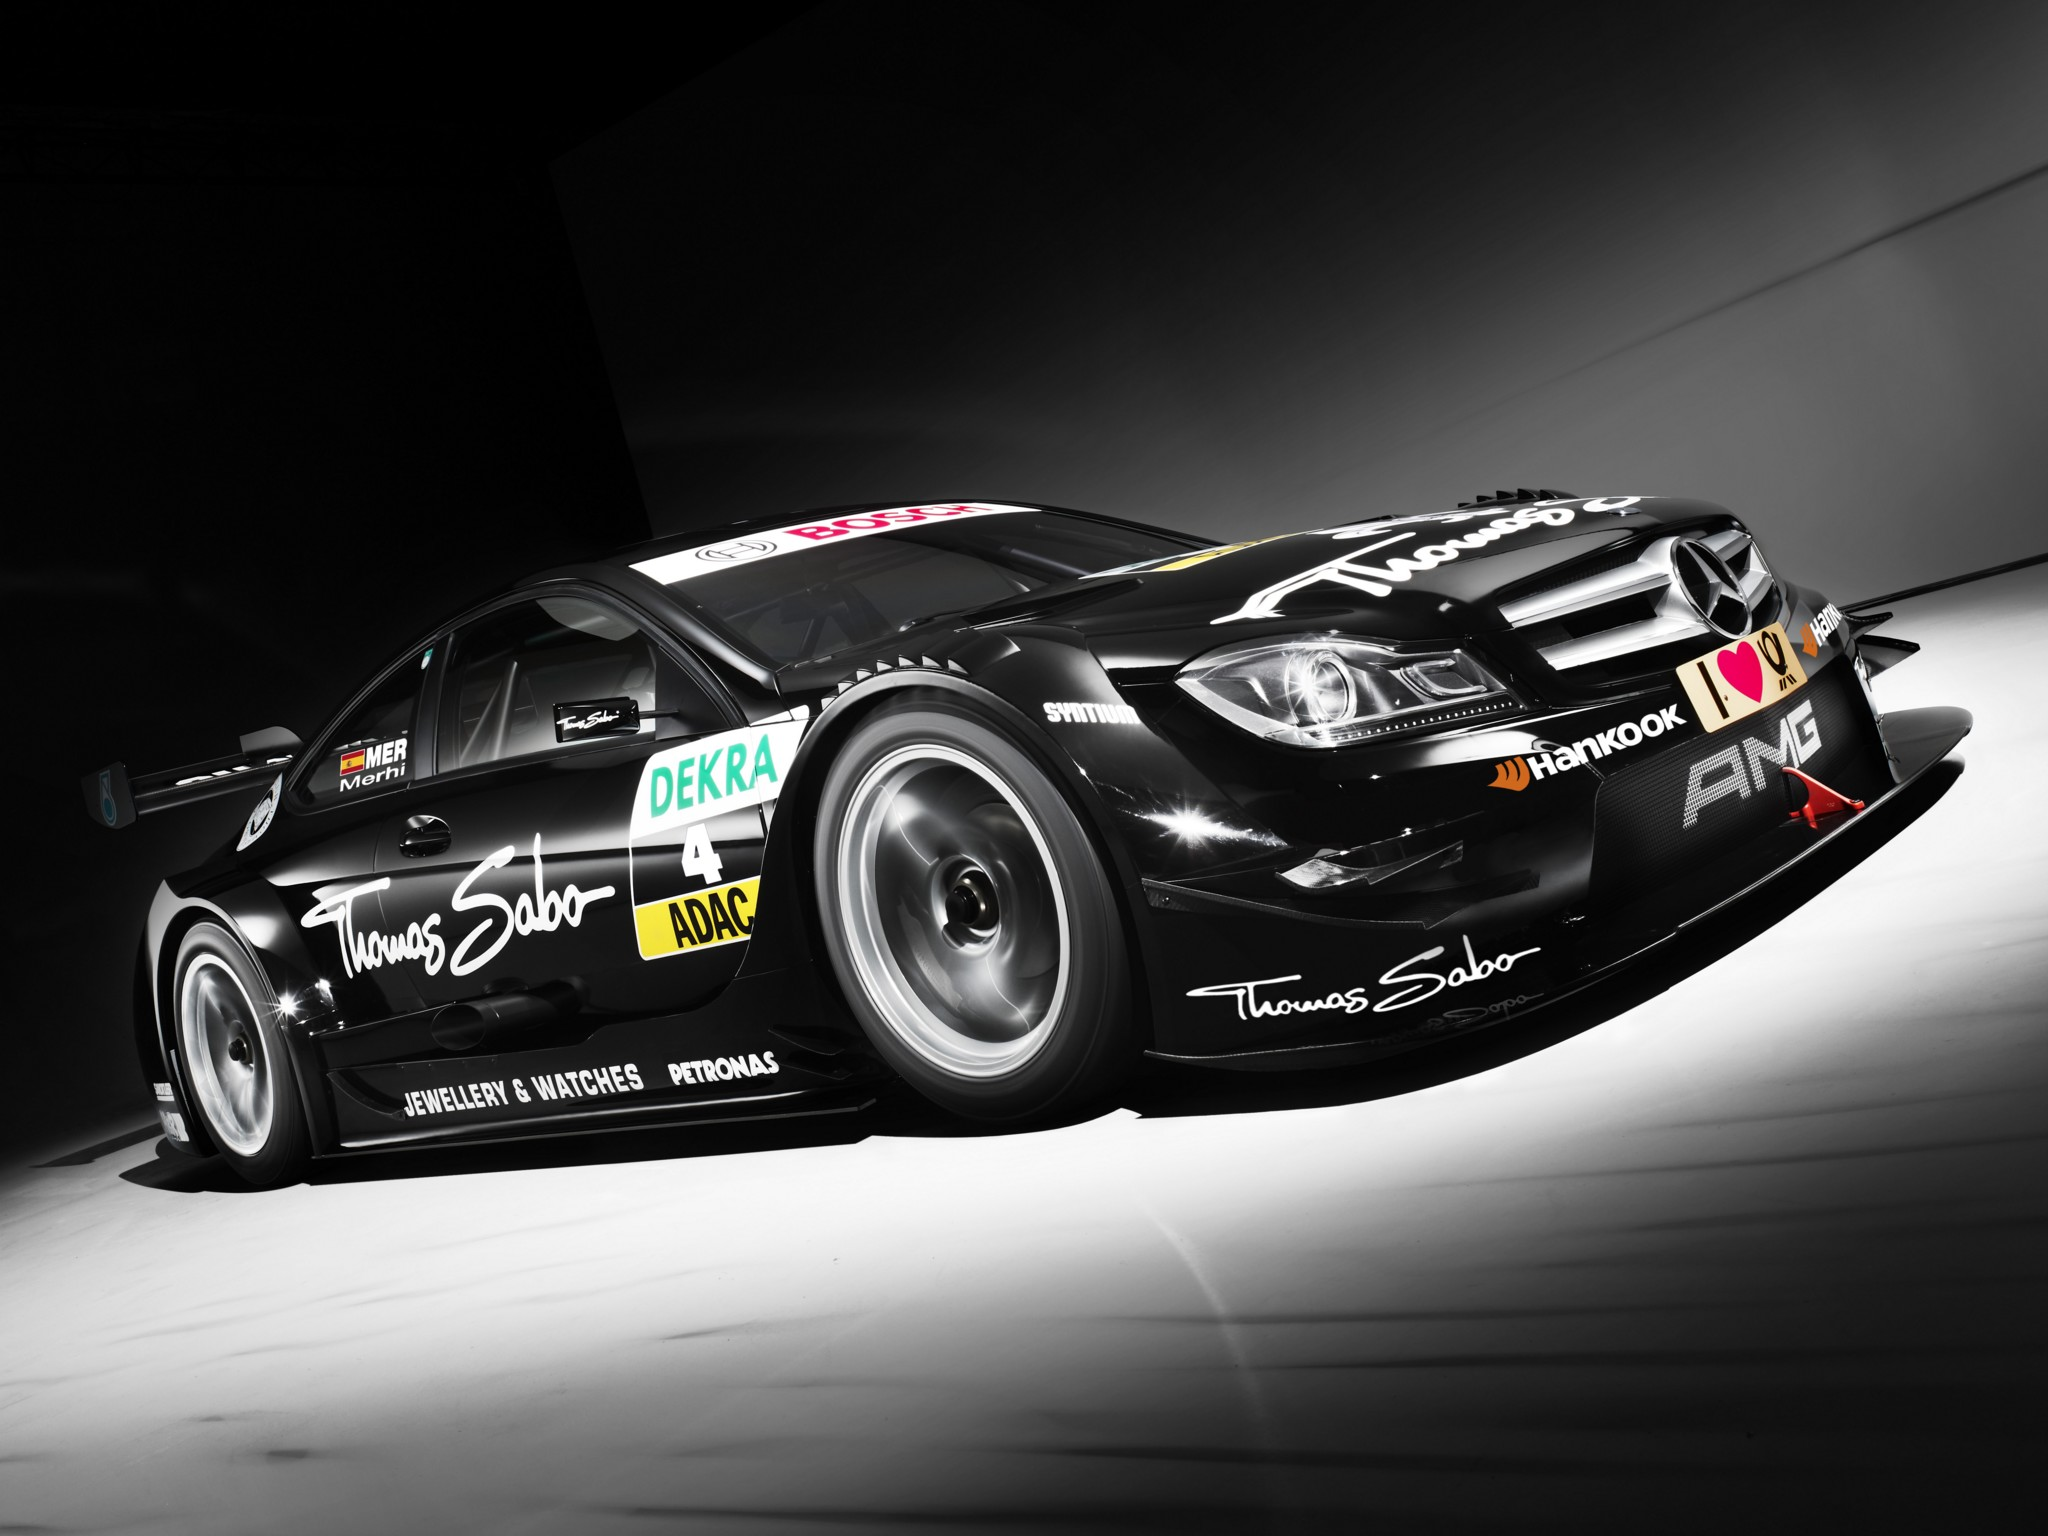 2013 mercedes benz amg dtm c204 race racing wallpaper for Mercedes benz race